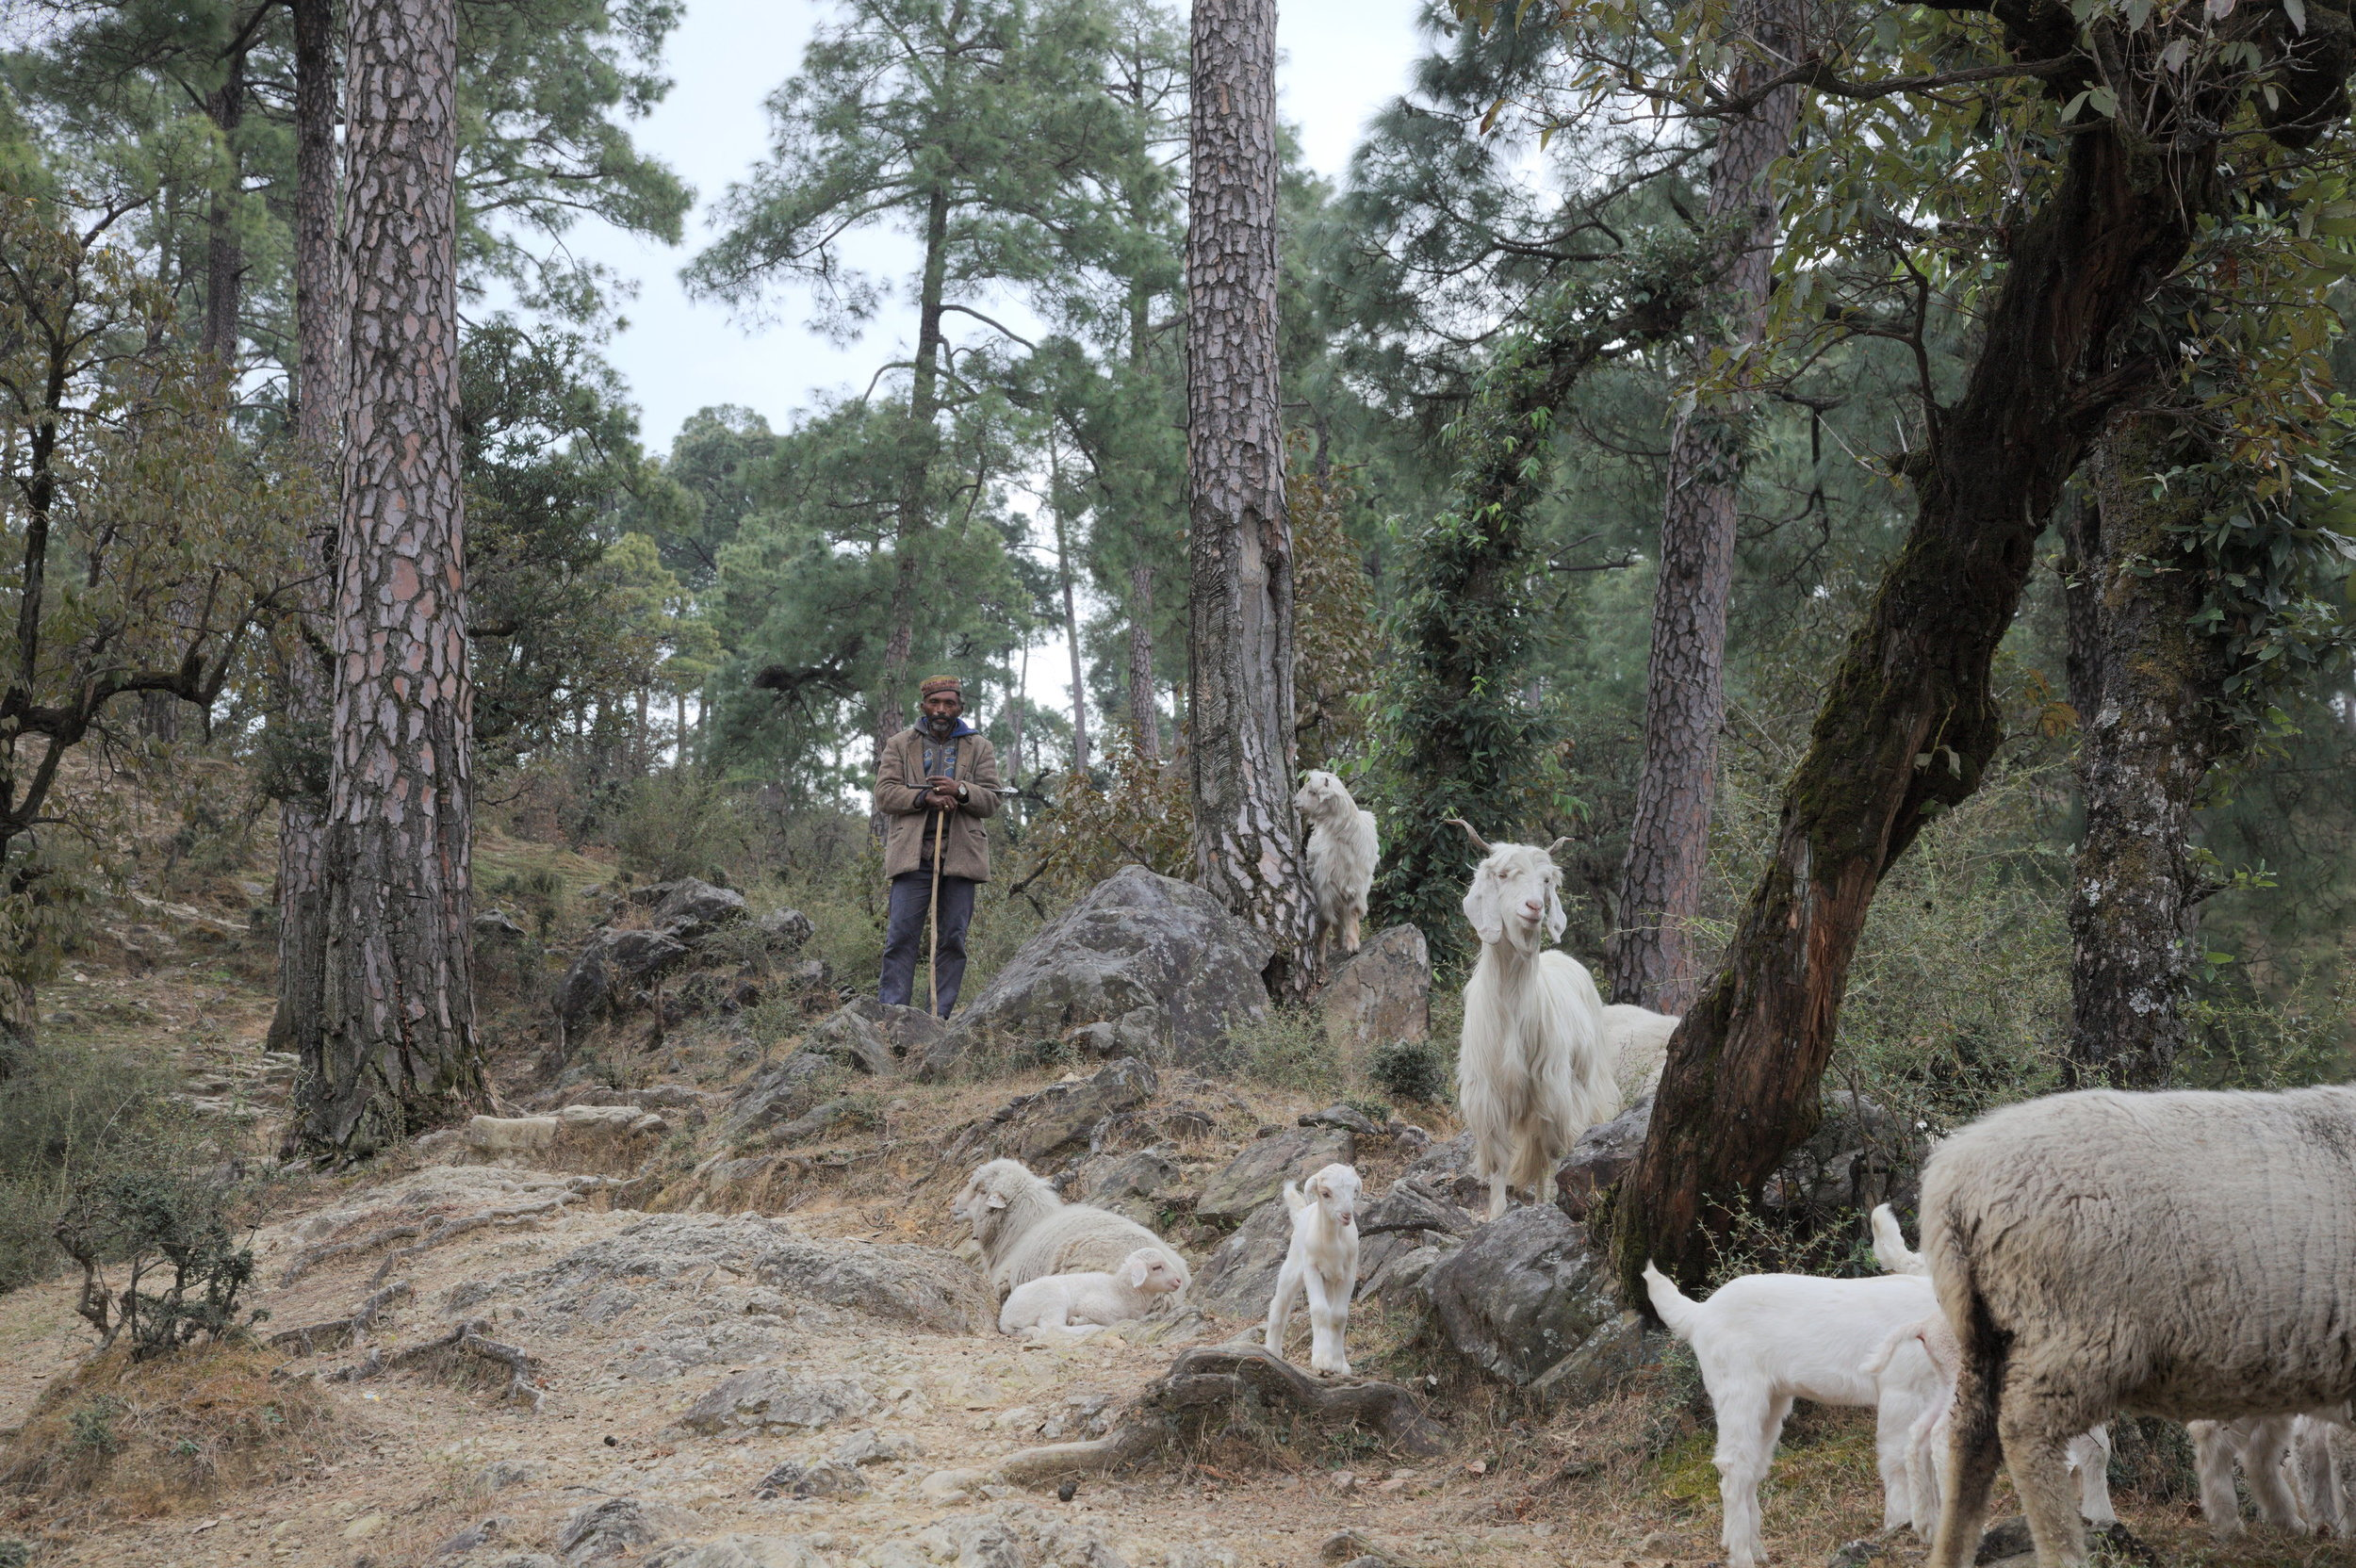 Arjun's workman with the flock, in a forest near Dharamsala, Himachal Pradesh